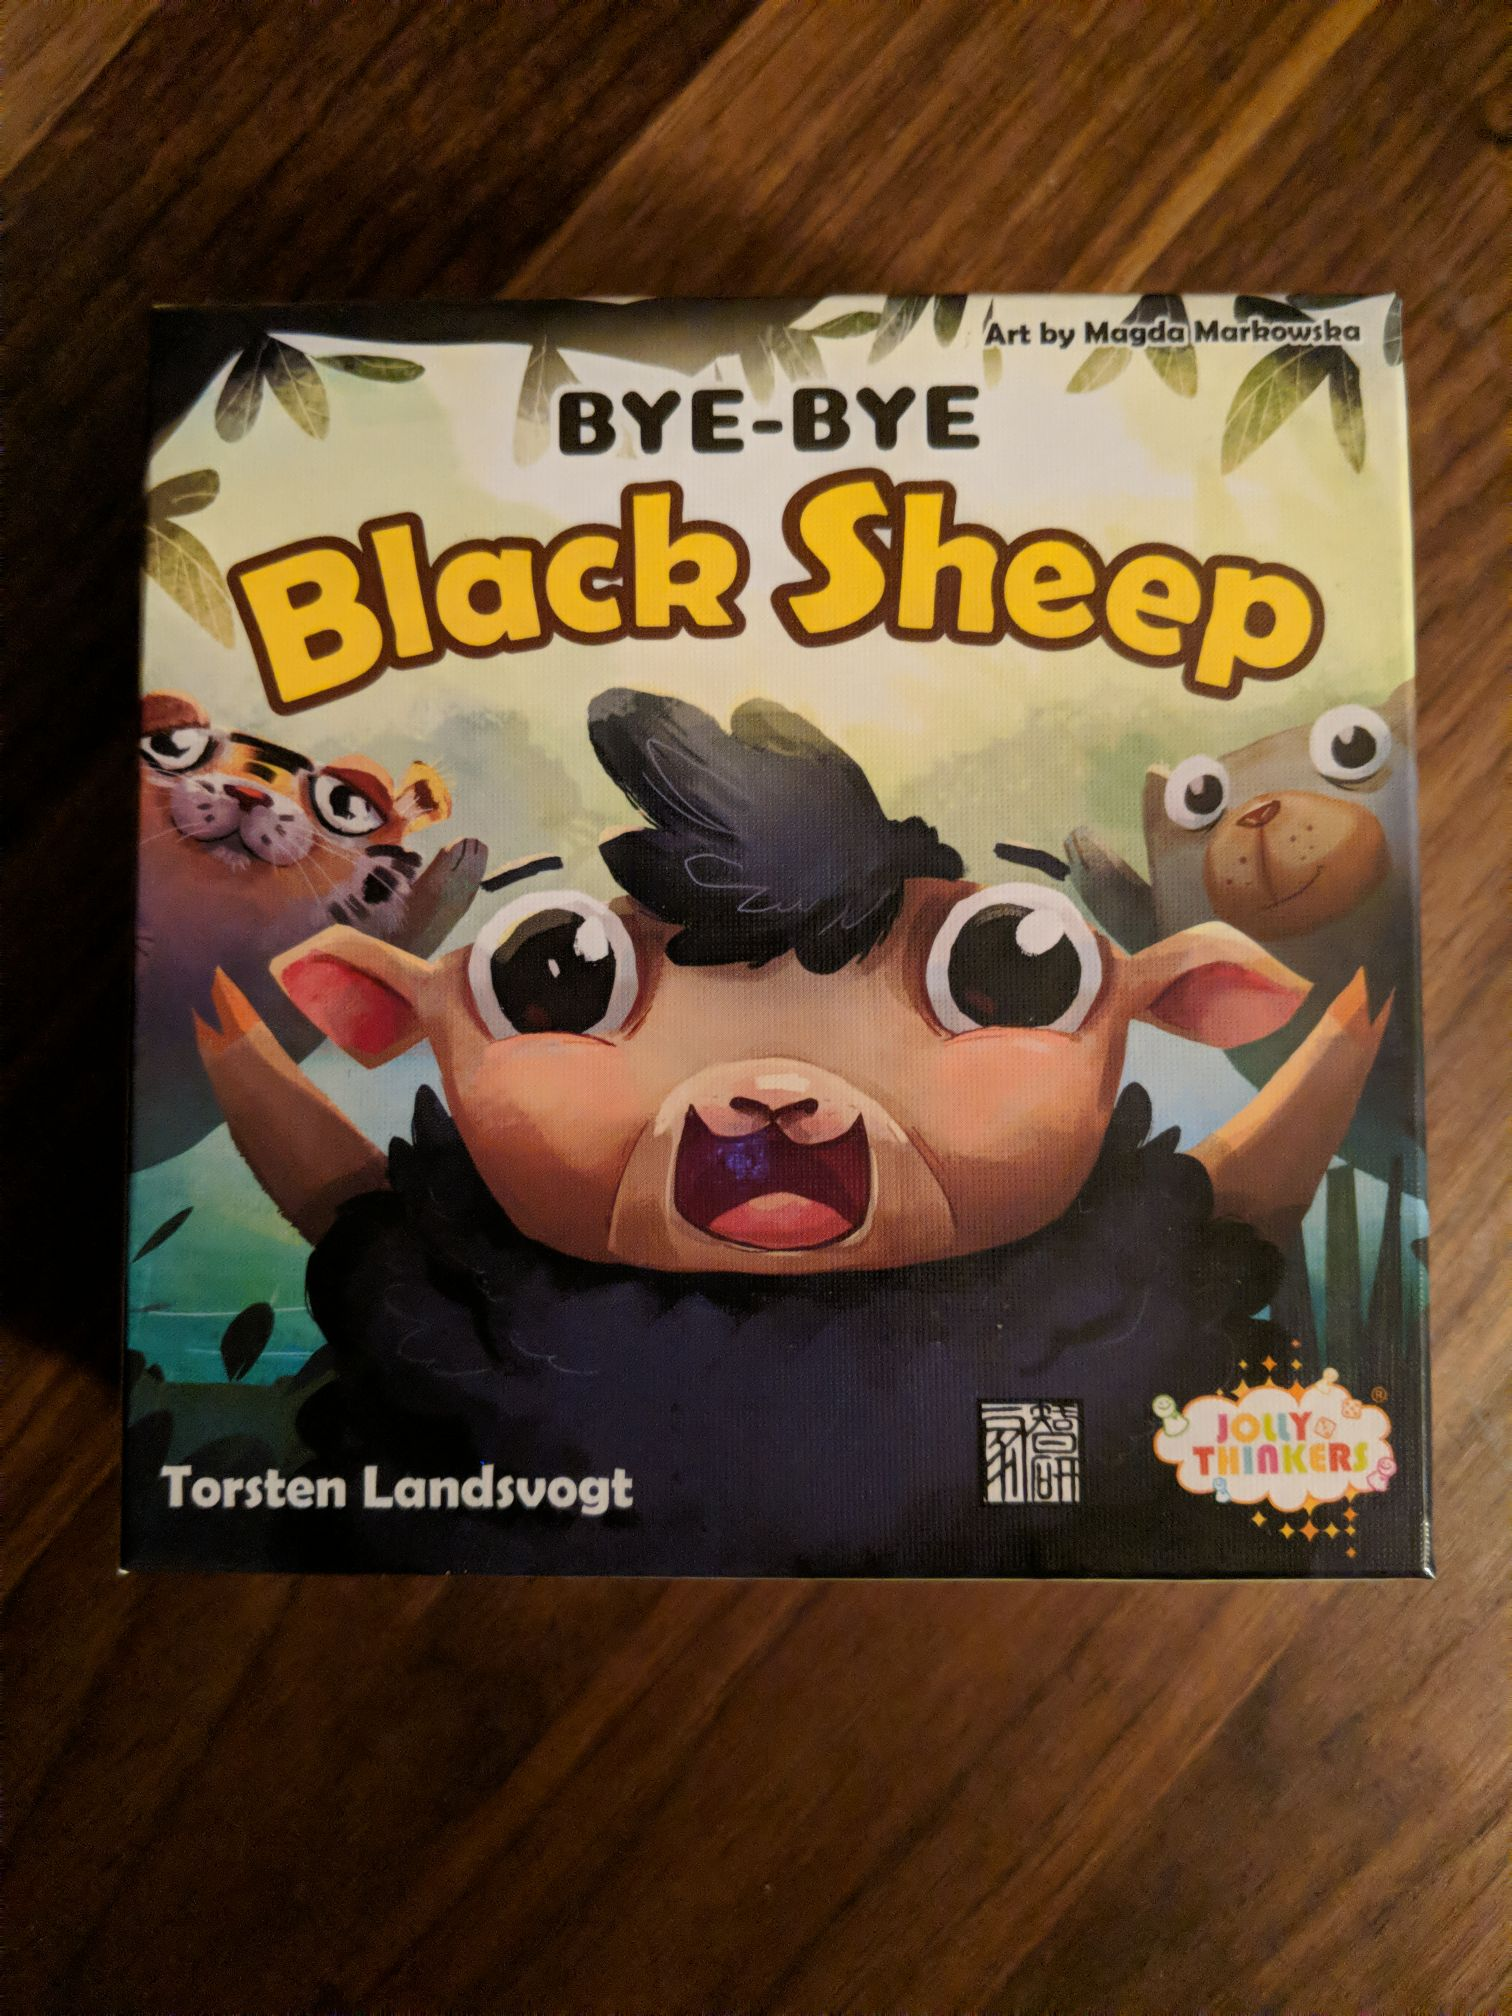 Bye-Bye Black Sheep Board Game - Jolly Thinkers (Card Game) front image (front cover)